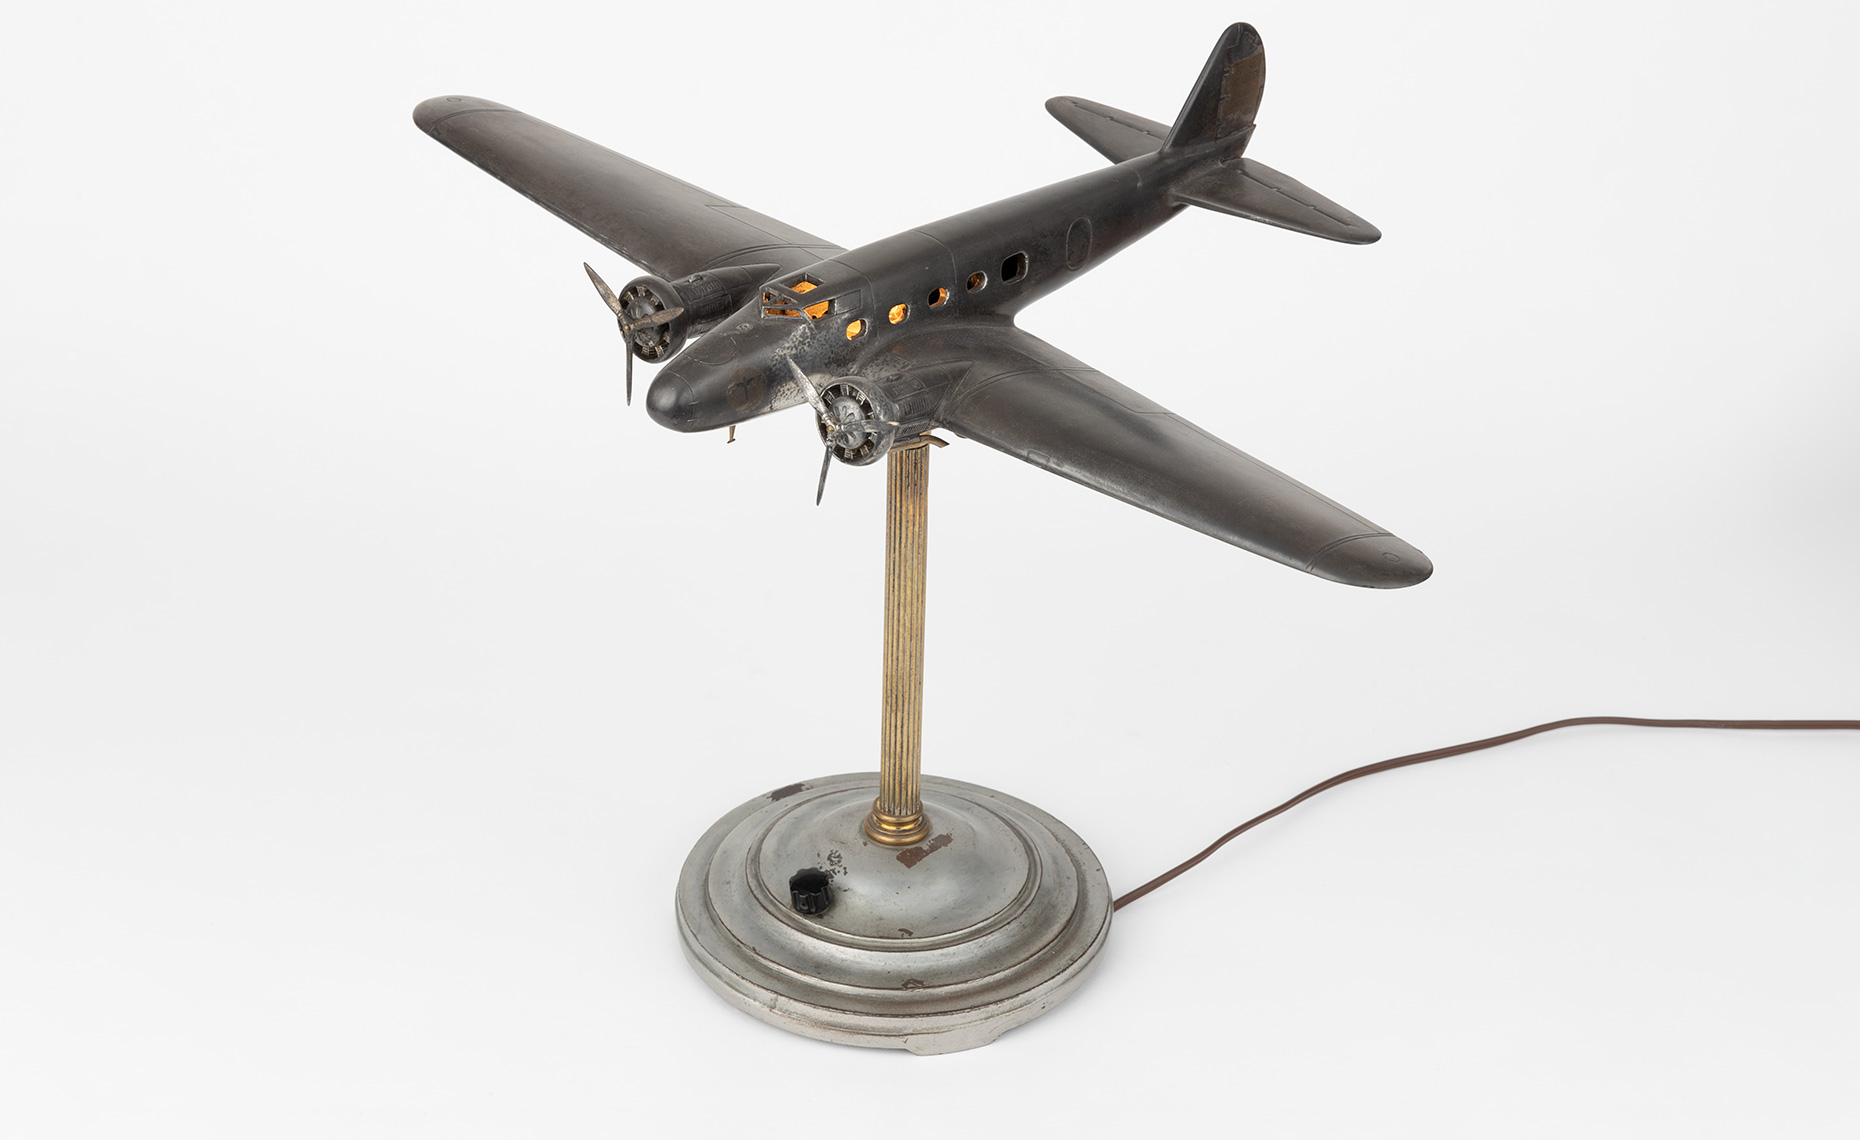 Boeing 247 table lamp by A. C. Rehberger